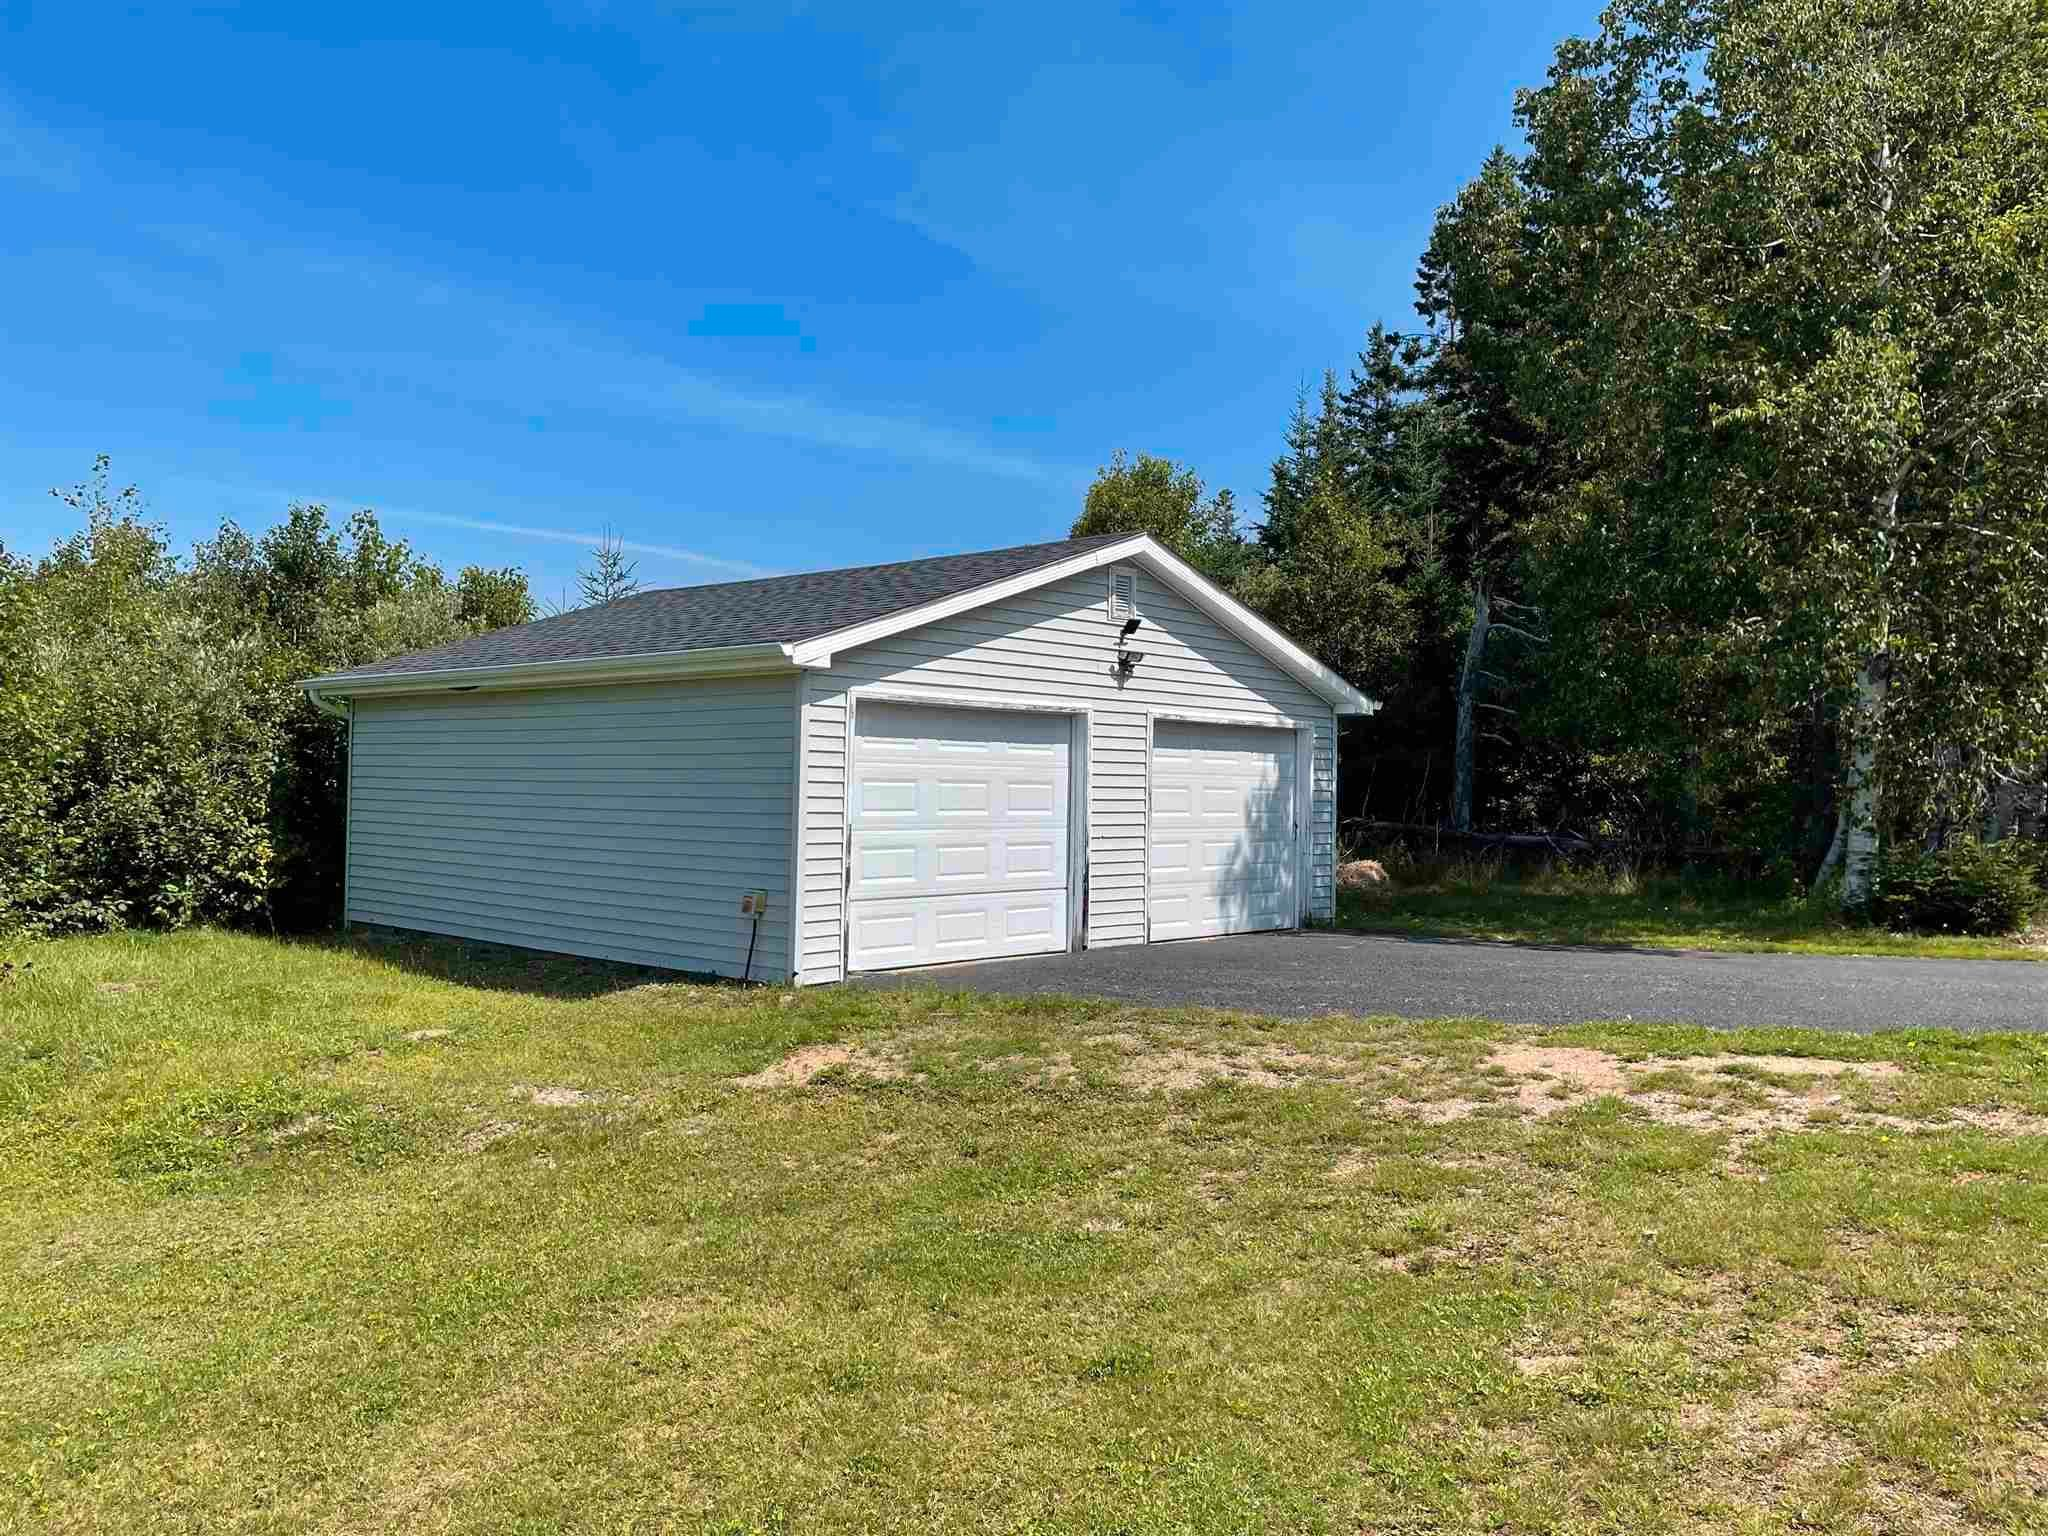 Photo 9: Photos: 3836 Highway 105 in South Haven: 209-Victoria County / Baddeck Residential for sale (Cape Breton)  : MLS®# 202120821